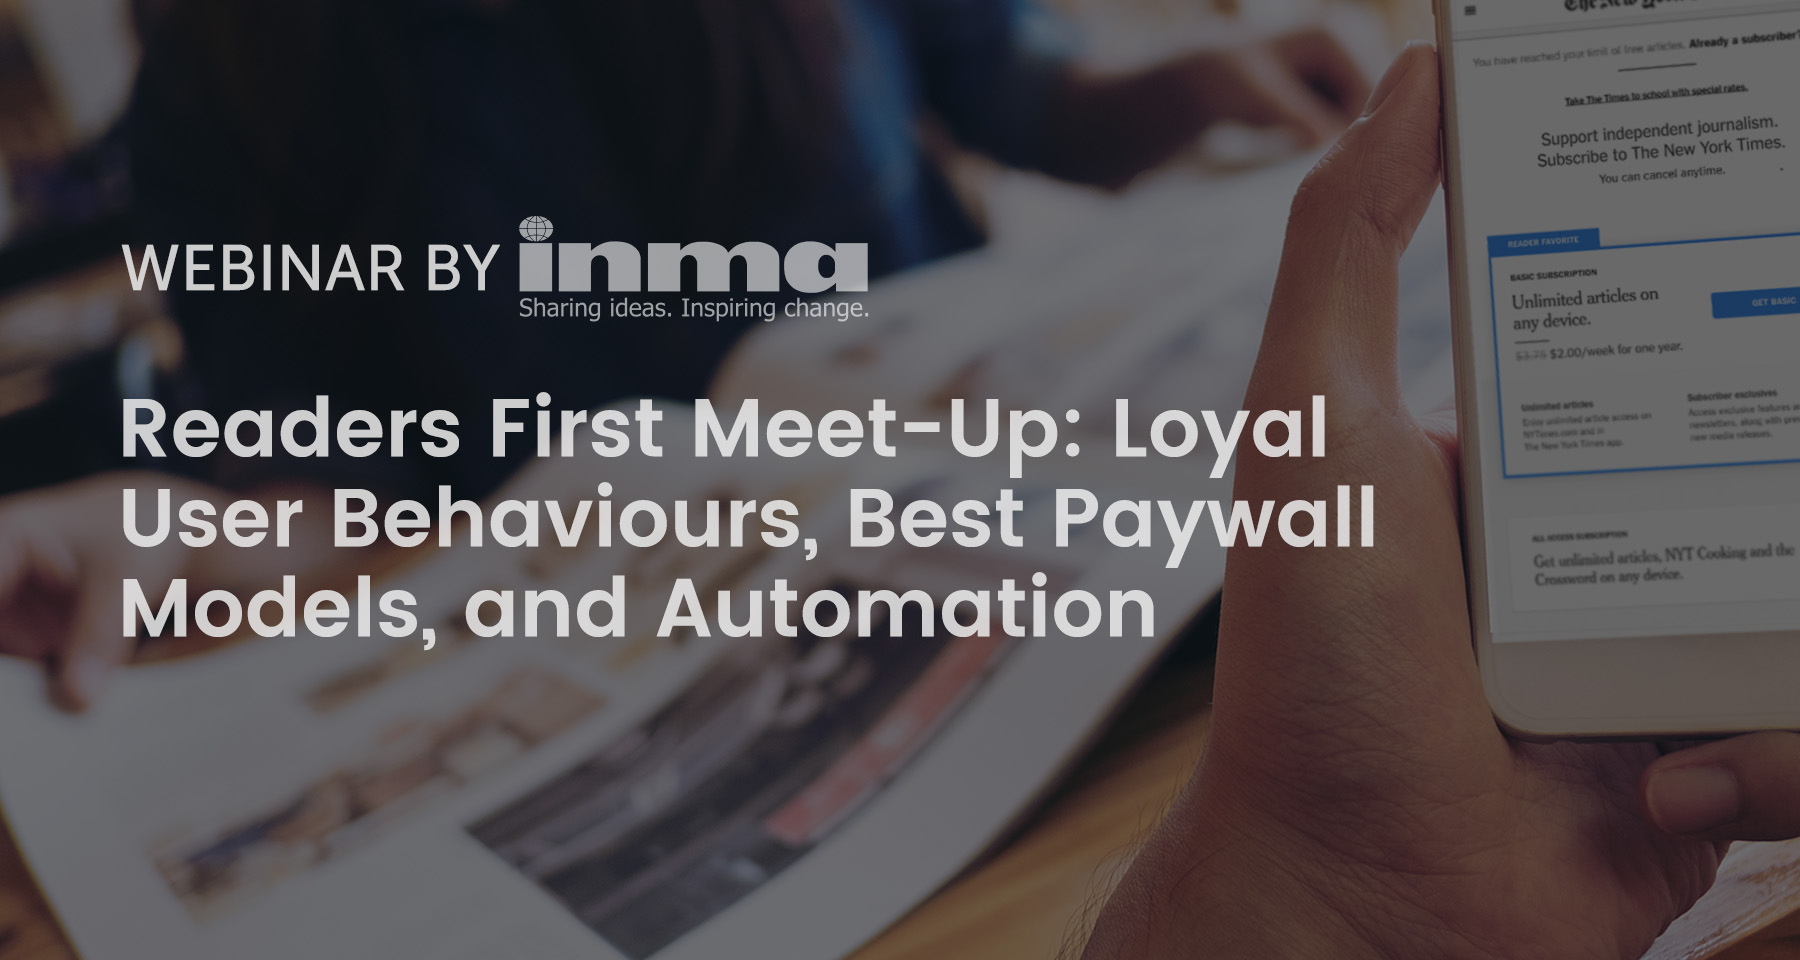 Upcoming Readers First Meet-Up: Loyal user behaviours, best paywall models, automation